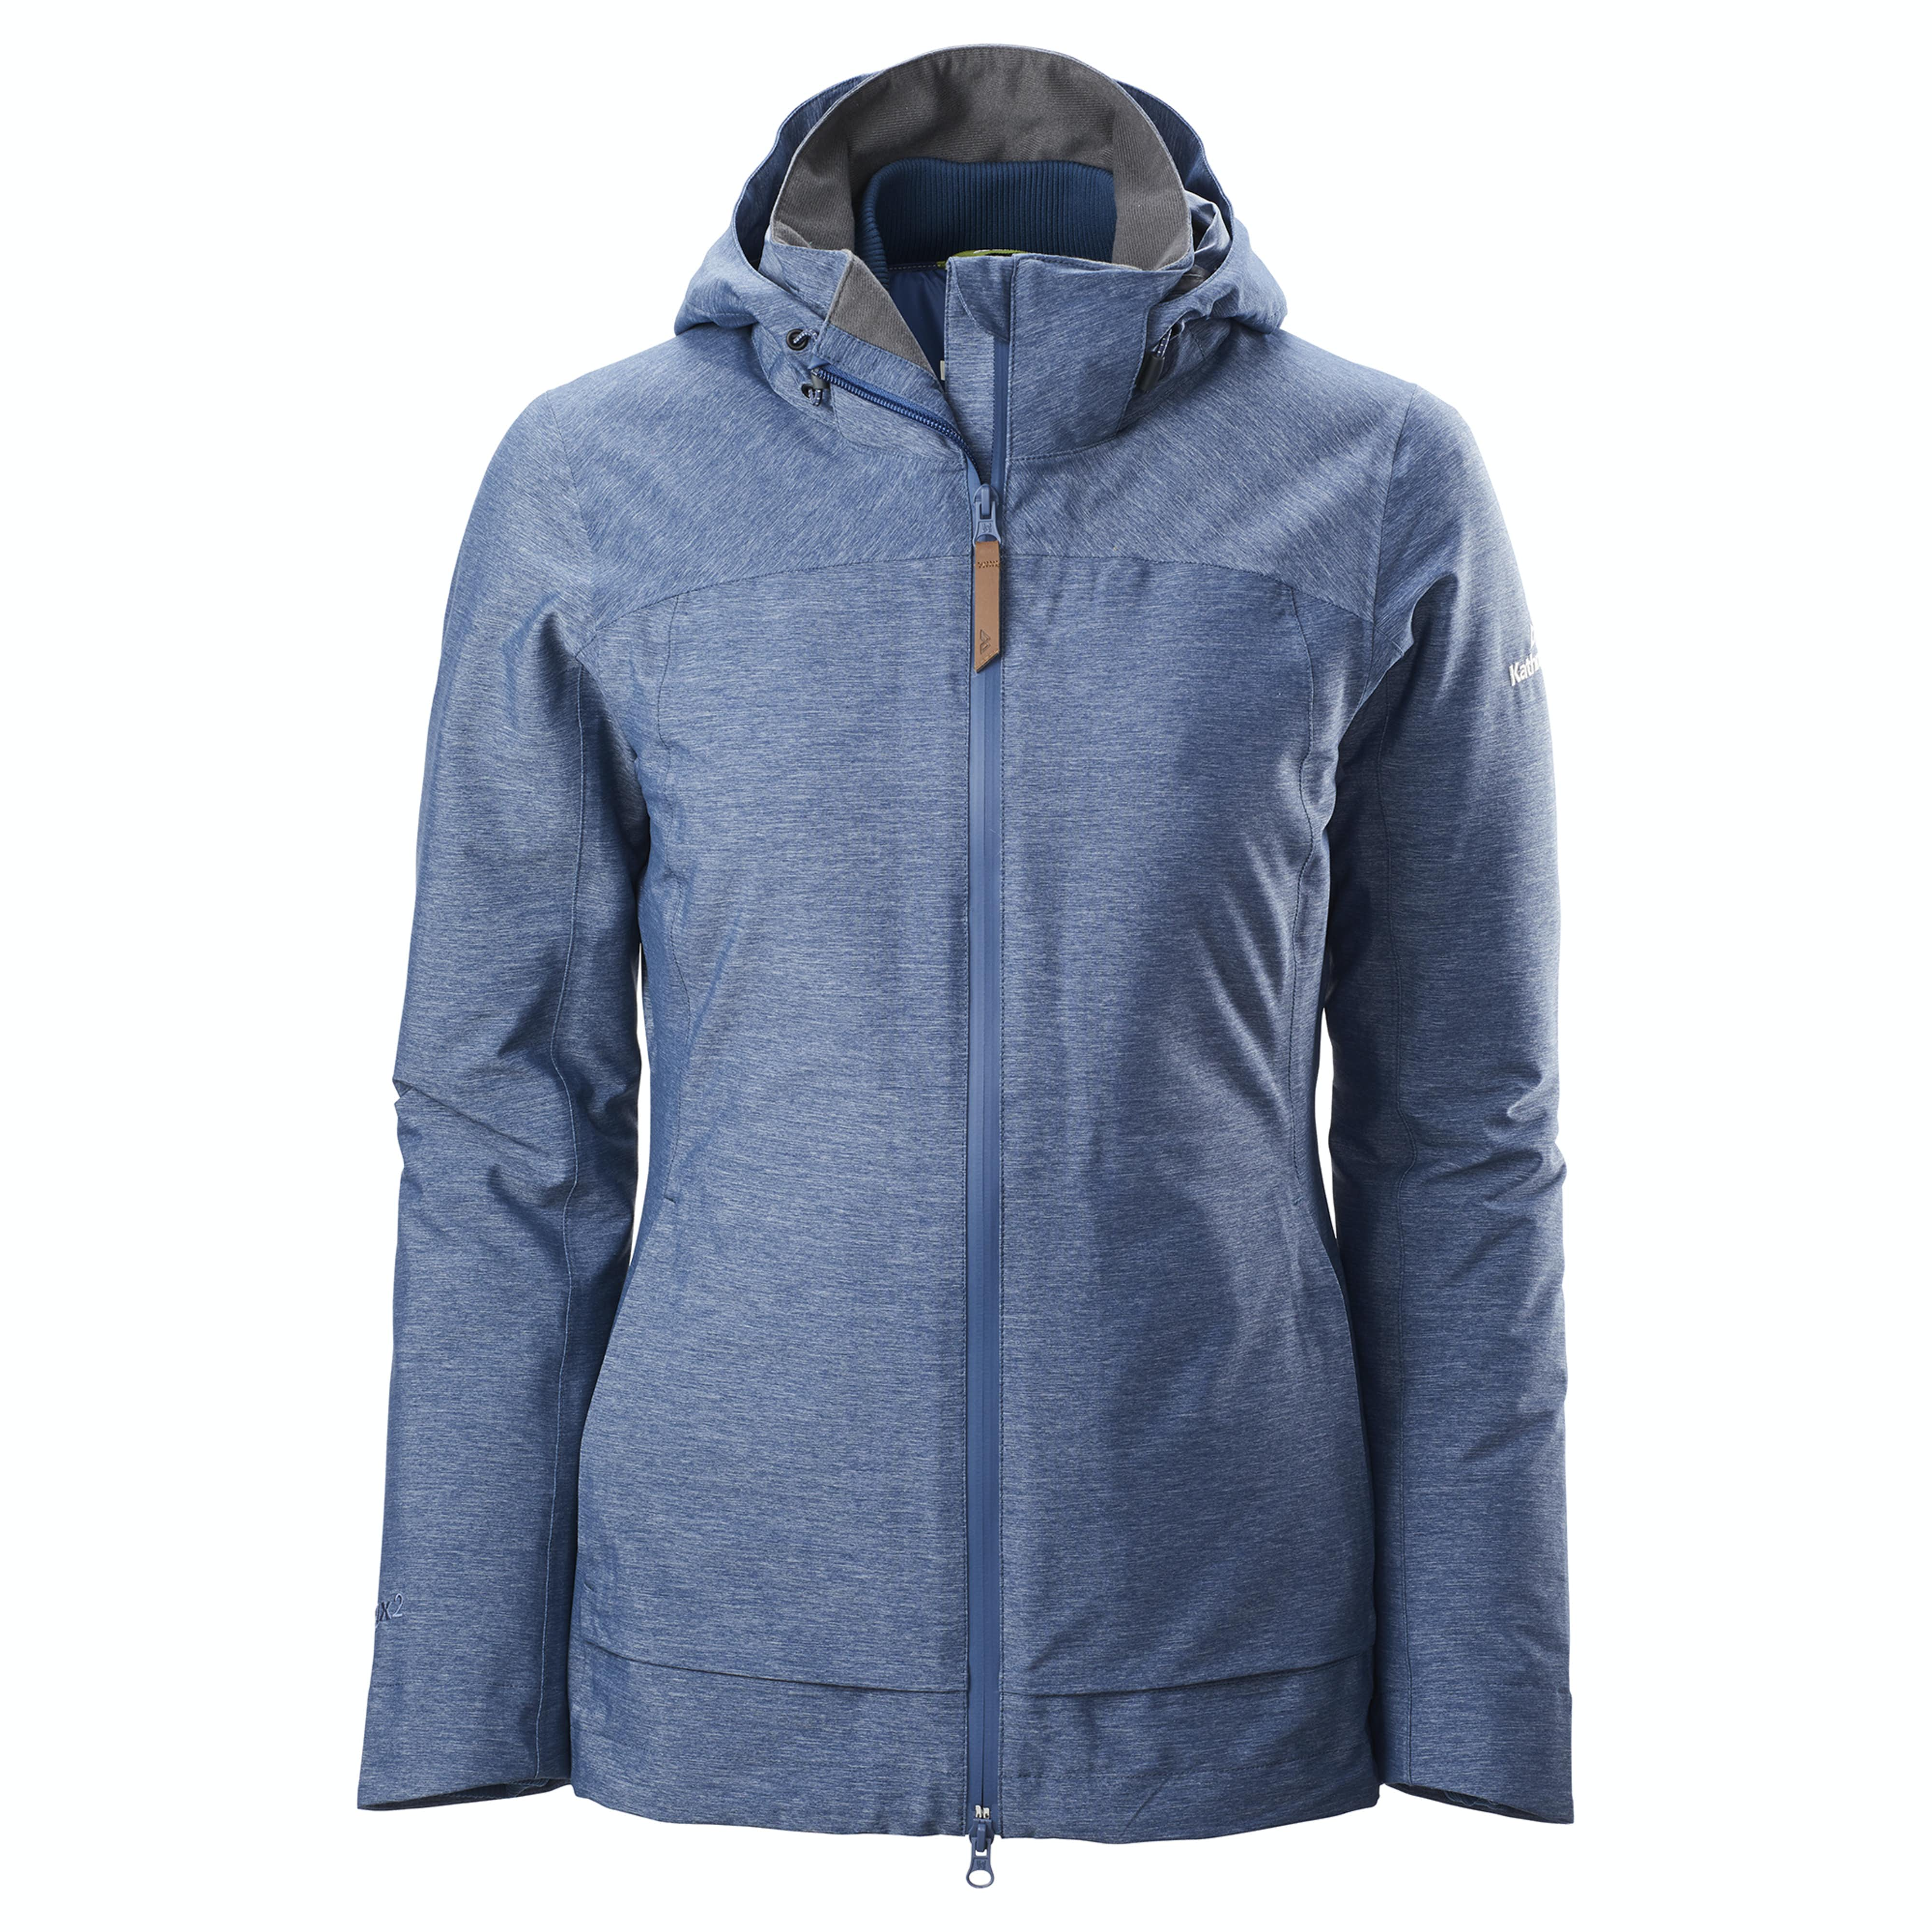 0c3072917 Benmore Women's ngx 5-in-1 Travel Rain Jacket